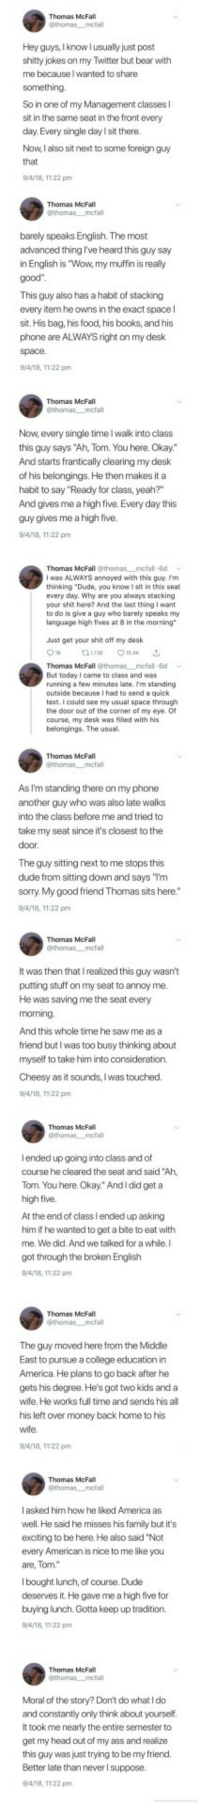 "America, Ass, and Books: Hey guys, Iknow l usually just post  shitty jokes on my Twitter but bear with  me because I wanted to share  So in one of my Management classes l  sit in the same seat in the front every  day.Every single day l sit there.  Now, I also sit next to some foreign guy  Thomas McFall  barely speaks English. The most  advanced thing I've heard this guy say  in English is ""Wow, my muffin is really  This guy also has a habit of stacking  every item he owns in the exact space l  sit. His bag, his food, his books, and his  phone are ALWAYS right on my desk  9/4/18, 1122 pm  Thomas McFall  Now, every single time I walk into class  this guy says ""Ah, Tom. You here. Okay.""  And starts frantically clearing my desk  of his belongings. He then makes it a  habit to say ""Ready for class, yeah?""  And gives me a high five. Every day this  guy gives me a high five.  Thomas McFall @thomas mcfal 8d  I was ALWAYS annoyed with this guy. I'm  thinking ""Dude, you know I sit in this seat  every day. Why are you always stacking  your shit here? And the last thing I want  to do is give a guy who barely speaks my  language high fives at 8 in the morning  Just get your shit oft my desk  Thomas McFall @thomas mcfal 8d  But today I came to class and was  running a few minutes late. Im standing  outside because I had to send a quick  text. I could see my usual space through  the door out of the comer of my eye. O  course, my desk was filled with his  belongings. The usual.  Thomas McFall  As I'm standing there on my phone  another guy who was also late walks  into the class before me and tried to  take my seat since it's closest to the  The guy sitting next to me stops this  dude from sitting don and says ""Tm  sorry. My good friend Thomas sits here.""  9/4/18, 11:22 pm  It was then that I realized this guy wasn't  putting stuff on my seat to annoy me  He was saving me the seat every  And this whole time he saw me as a  friend butl was too busy thinking about  myself to take him into consideration.  Cheesy as it sounds, Iwas touched.  4/18, 11:22 pm  Thomas McFa  lended up going into class and of  course he cleared the seat and said 'Ah  Tom. You here. Okay"" AndI did get a  high five.  At the end of class l ended up asking  him if he wanted to get a bite to eat with  me. We did. And we talked for a while.I  got through the broken English  Thomas McFall  The guy moved here from the Middle  East to pursue a college education in  America. He plans to go back after he  gets his degree. He's got two kids and a  wife. He works full time and sends his al  his left over money back home to his  9/4/18, 11:22 pm  I asked him how he liked America as  well. He said he misses his family but it's  exciting to be here. He also said Not  every American is nice to me like you  l bought lunch, of course. Dude  deserves it. He gave me a high five for  buying lunch. Gotta keep up tradition.  Thomas McFall  Moral of the story? Don't do what I do  and constantly only think about yourself  It took me nearly the entire semester to  get my head out of my ass and realize  this guy was just trying to be my friend.  Better late than never l suppose.  94/18, 11:22 pm <p>Wholesome twitter via /r/wholesomememes <a href=""https://ift.tt/2JMYuNH"">https://ift.tt/2JMYuNH</a></p>"